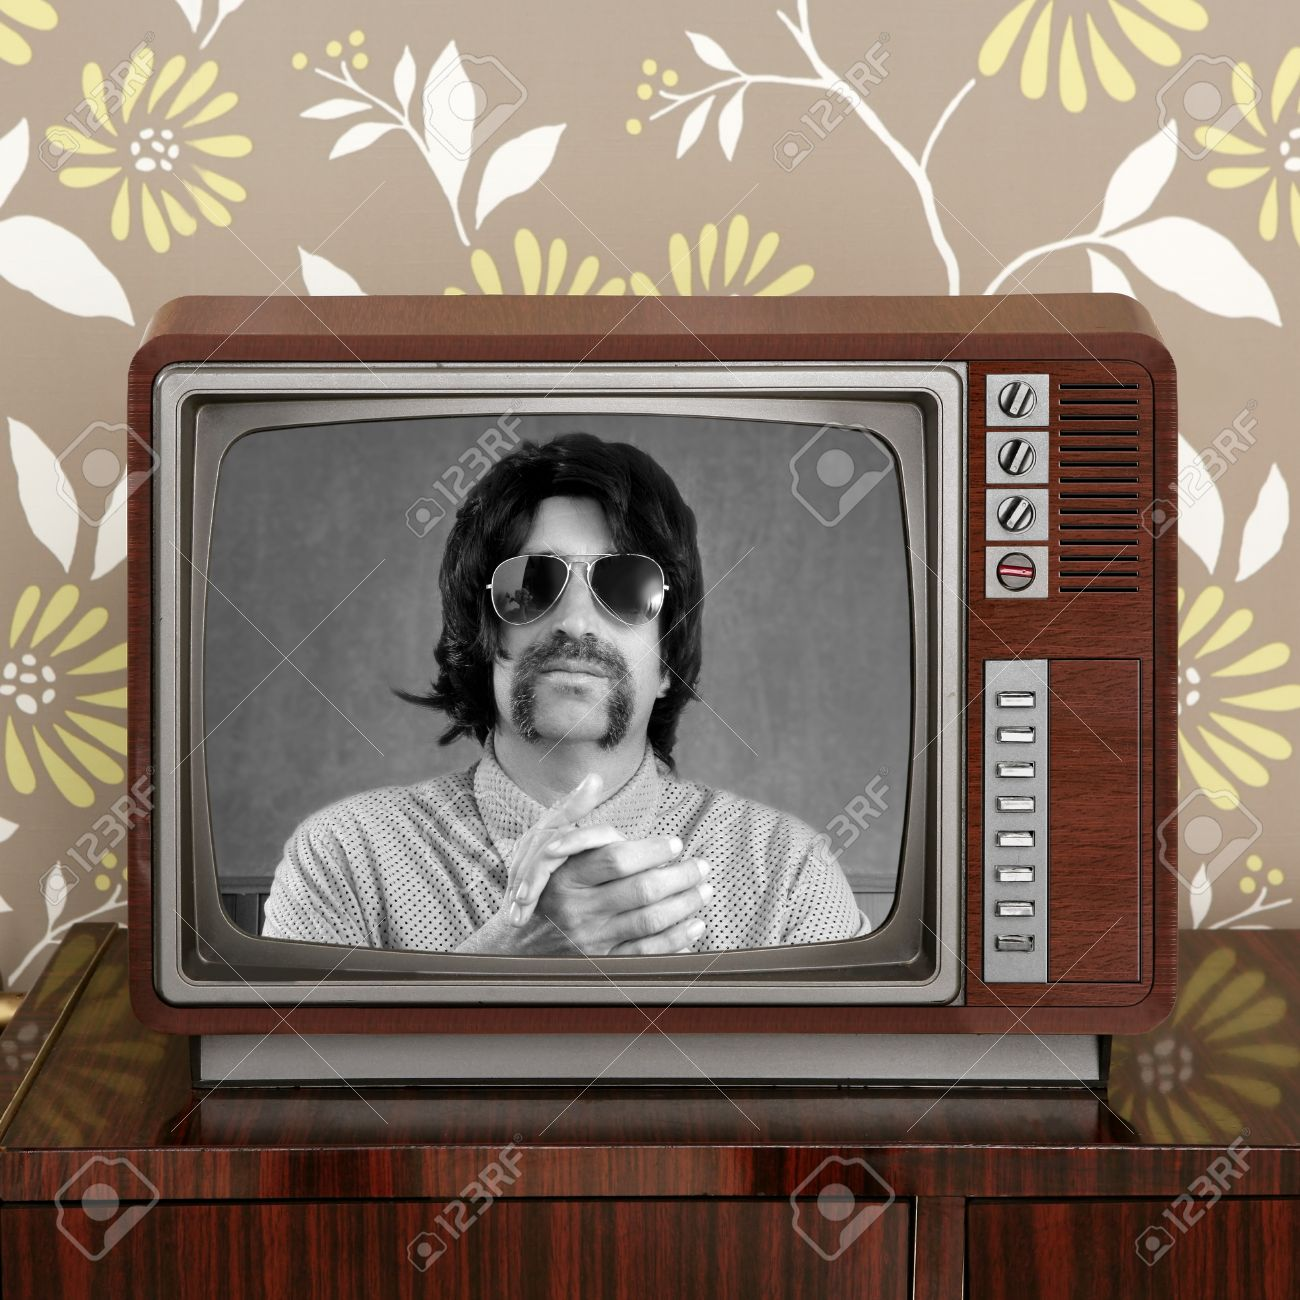 geek mustache tv presenter in retro wood television vintage wallpaper Stock Photo - 8926054